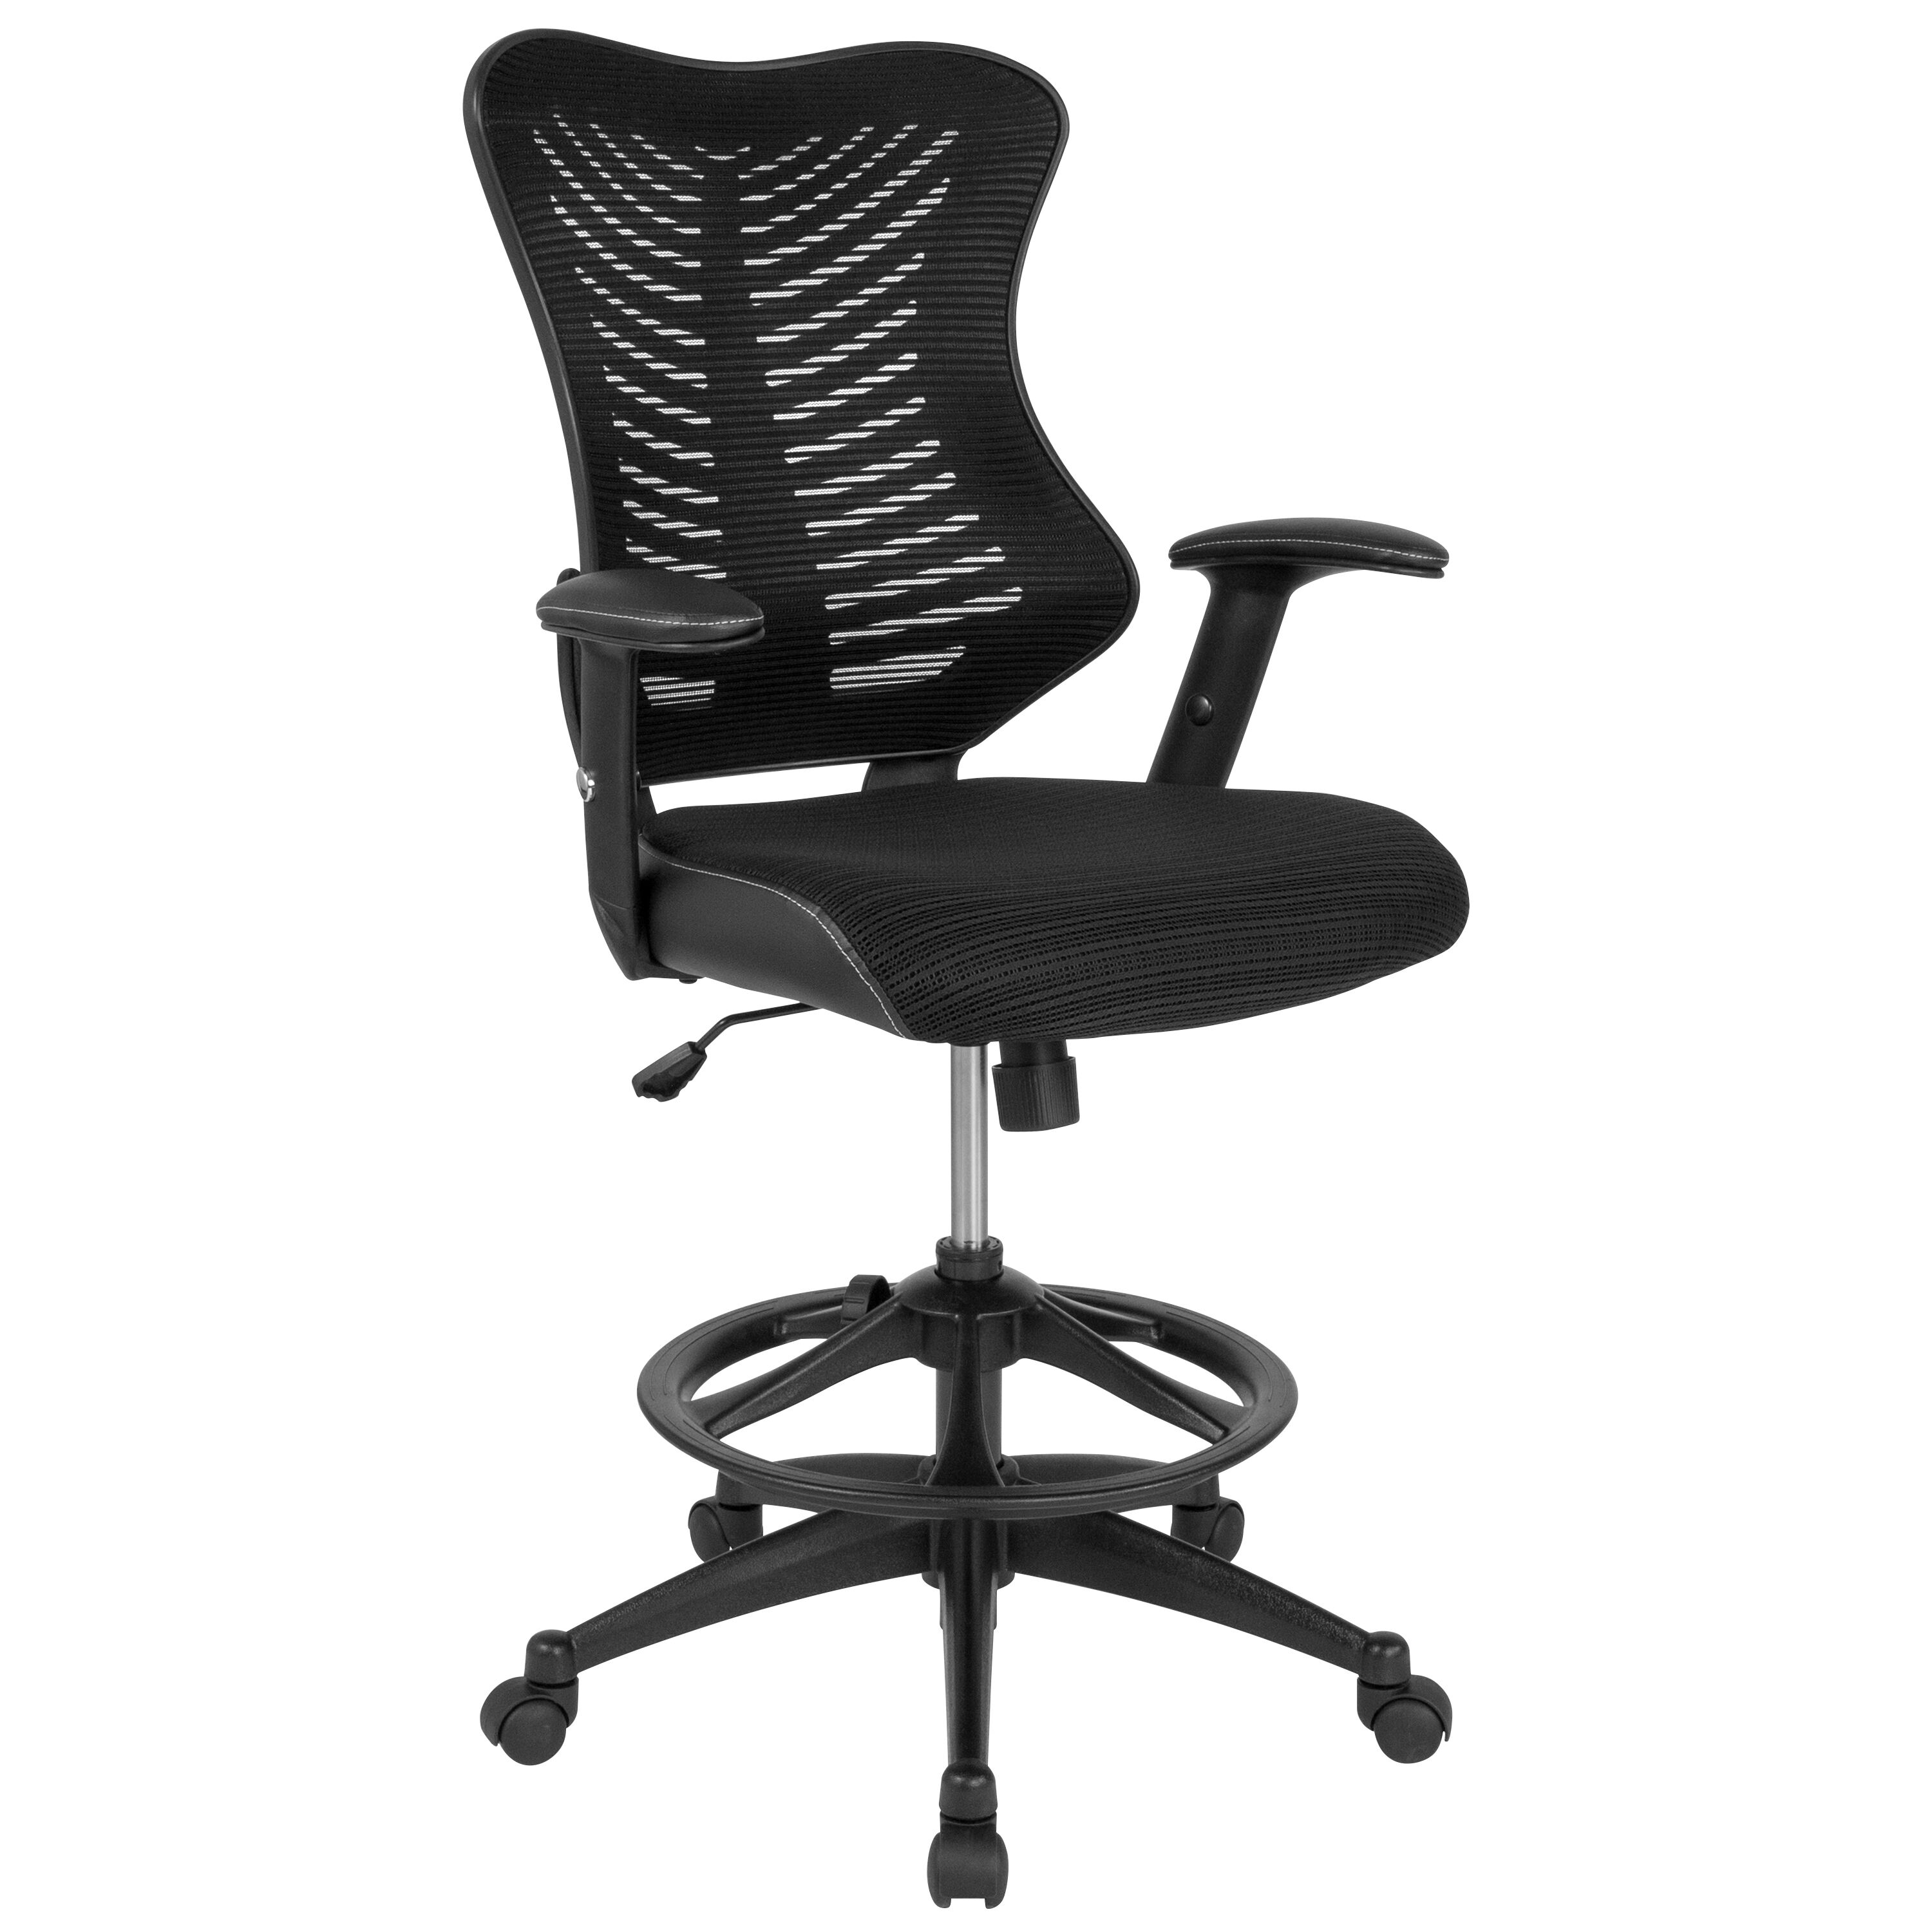 mesh drafting chair small round bedroom chairs black bl lb 8816d gg restaurantfurniture4less com